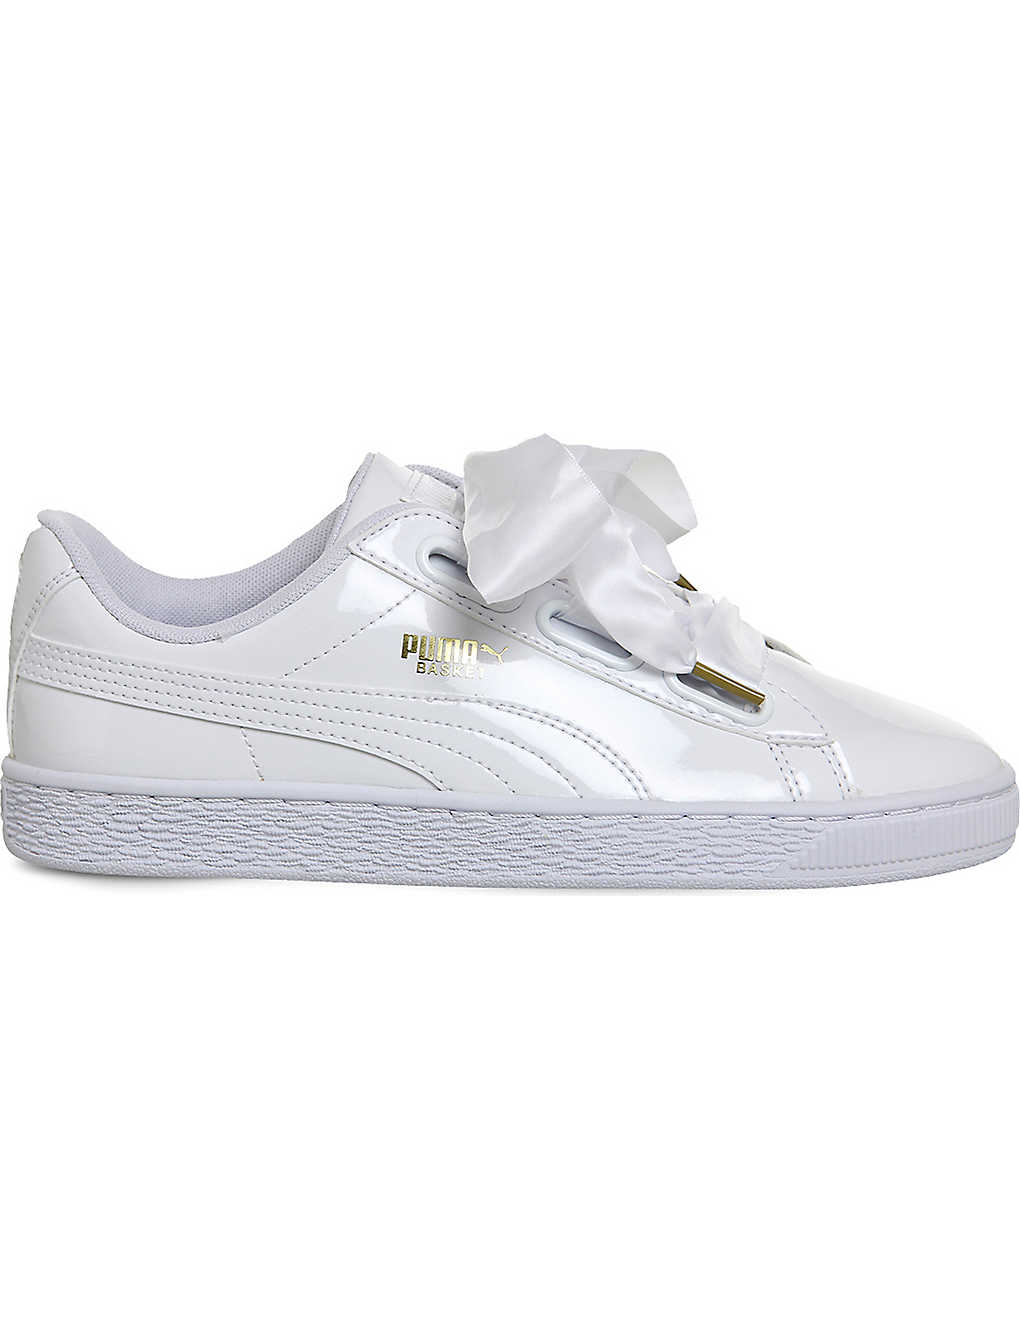 new arrival 71253 929e5 PUMA Basket Heart patent-leather trainers